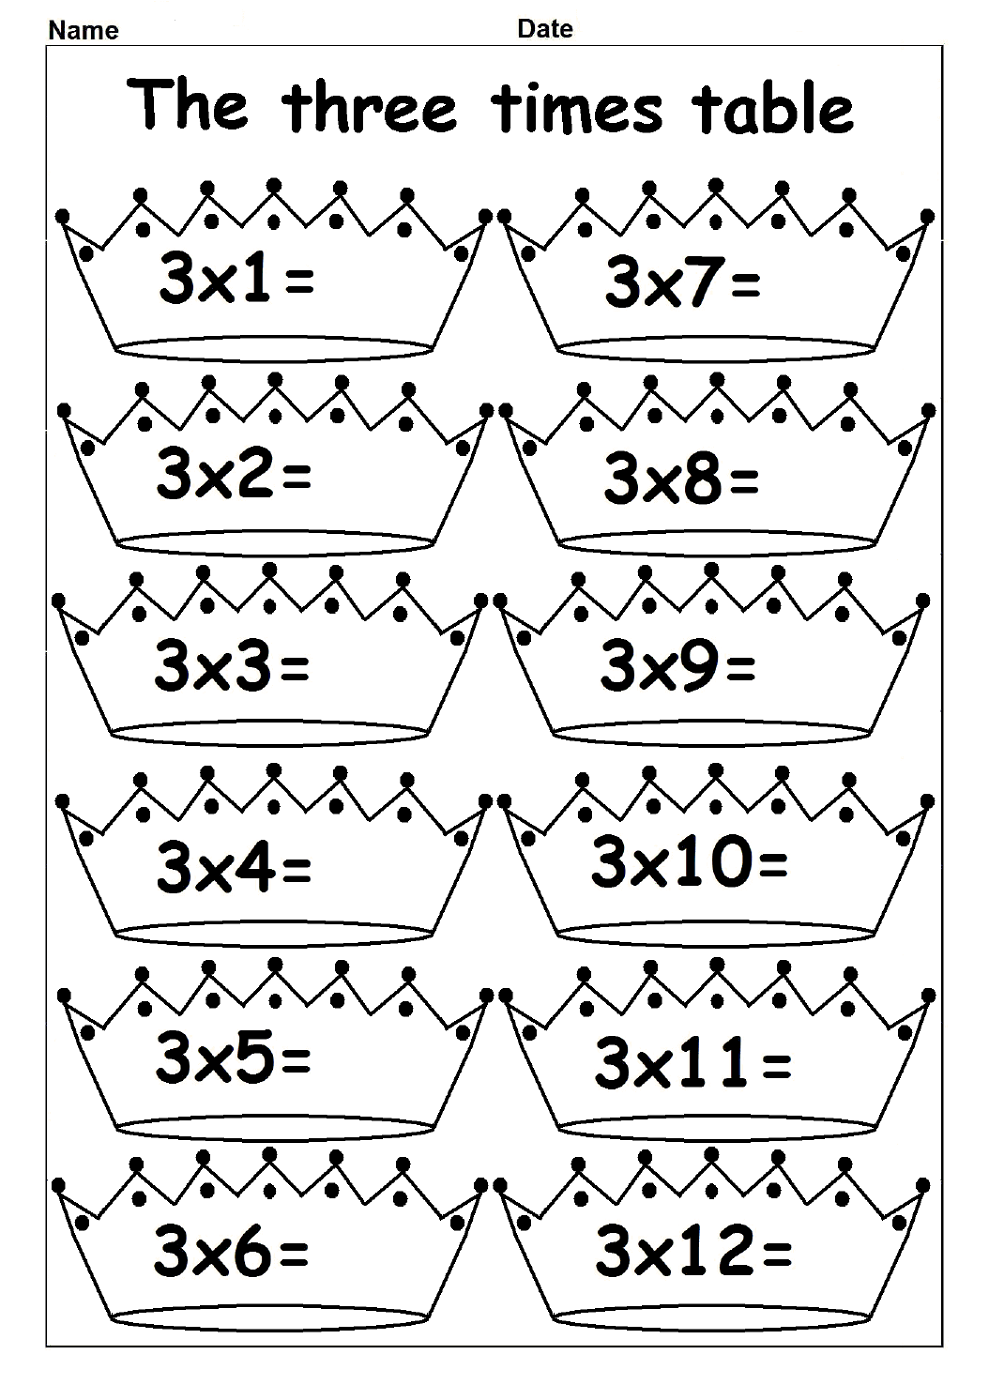 multiply by 3 worksheets for kids